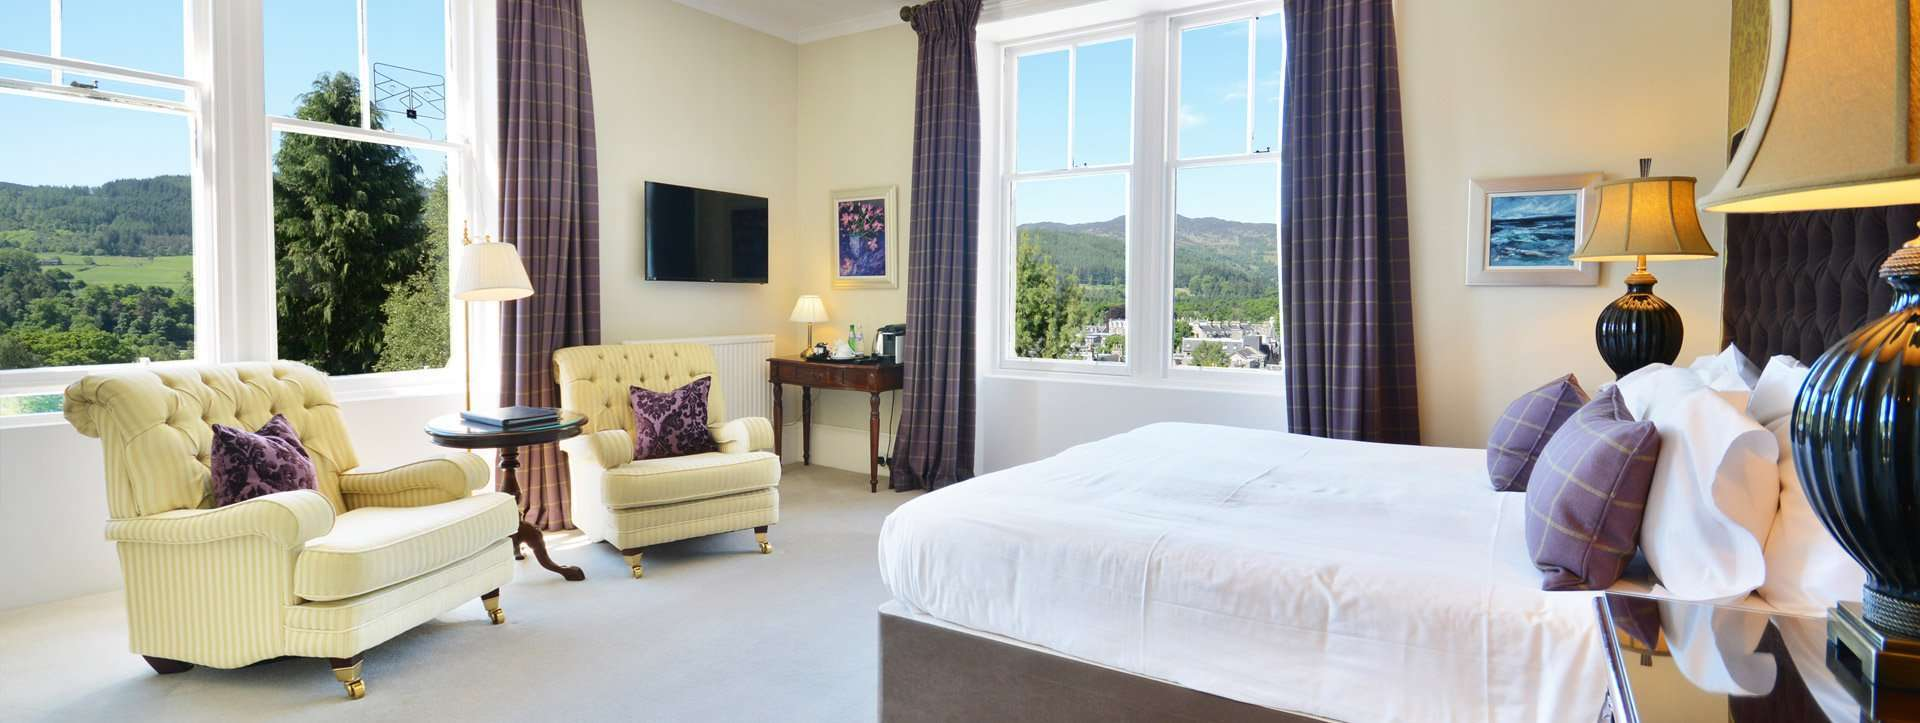 Premier Rooms - Hotel Pitlochry